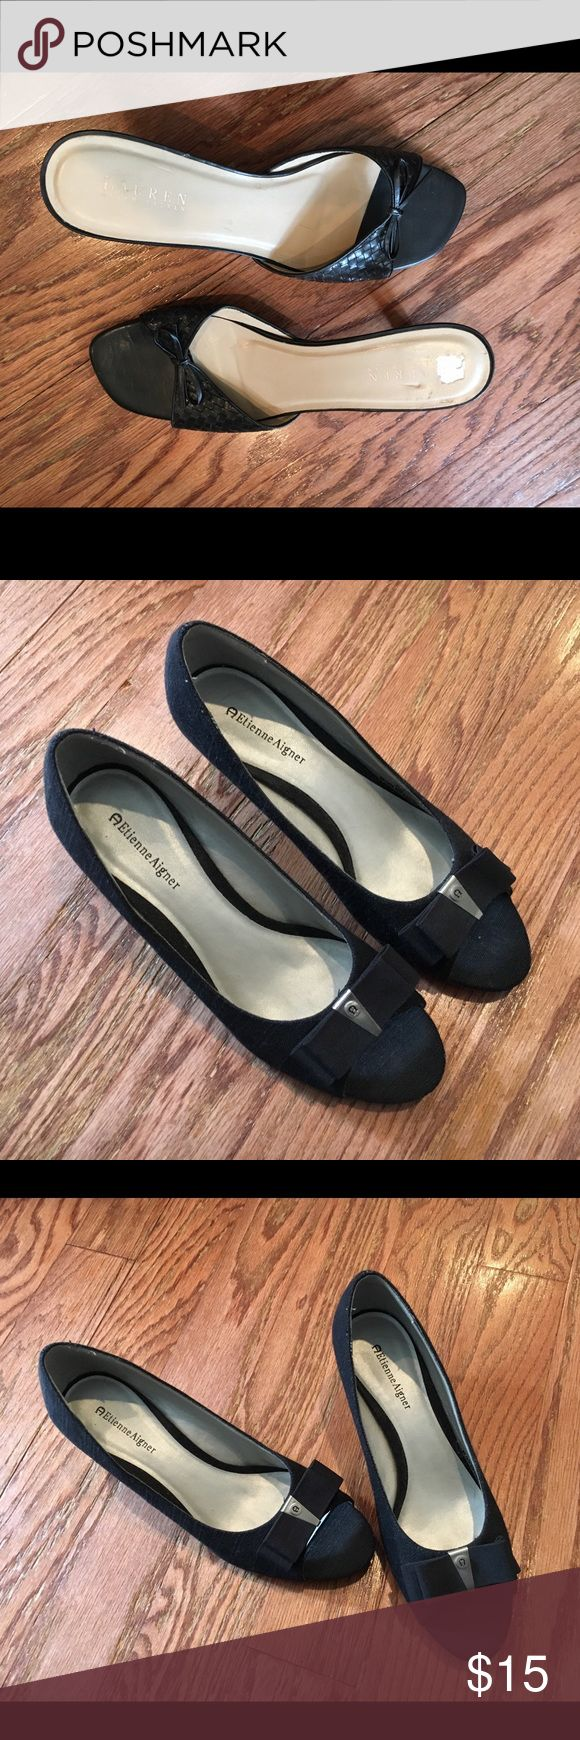 Black Shoes Etienne Aigner Size 8 1/2 Gently used black Etienne Aigner brand Womens shoes; Size 8.5; 19083002; Made in China Etienne Aigner Shoes Platforms